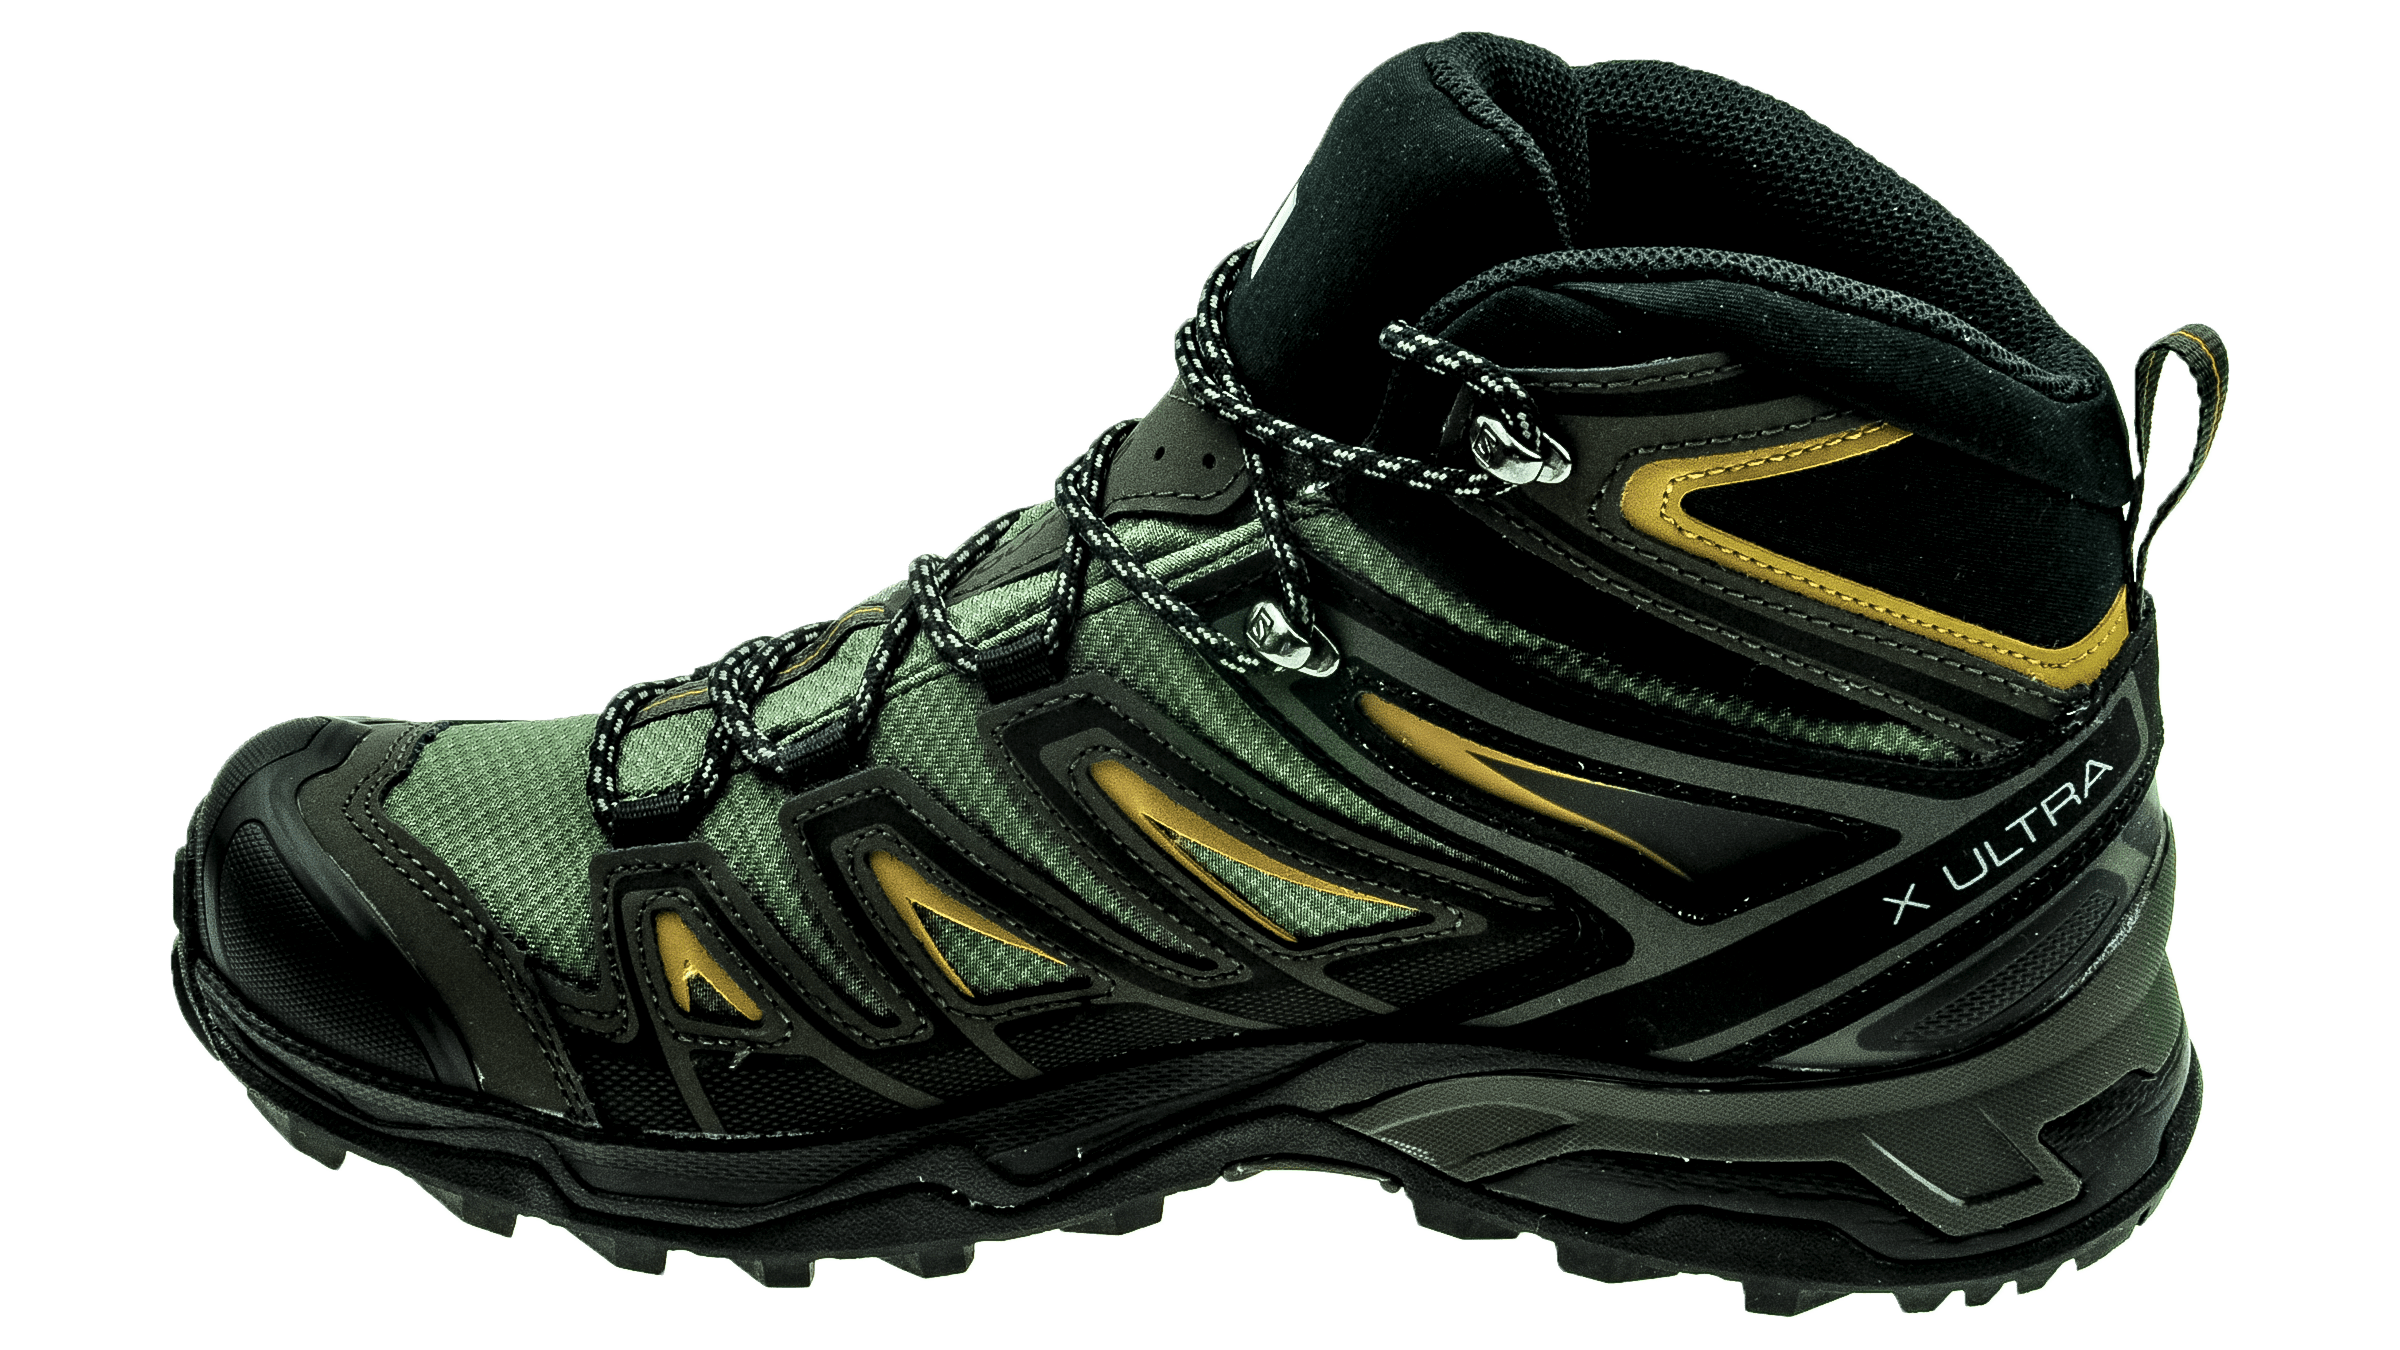 finest selection b4e8a ff032 Salomon X Ultra Mid 3 GTX Castor Gray/Black/Green Sulphur